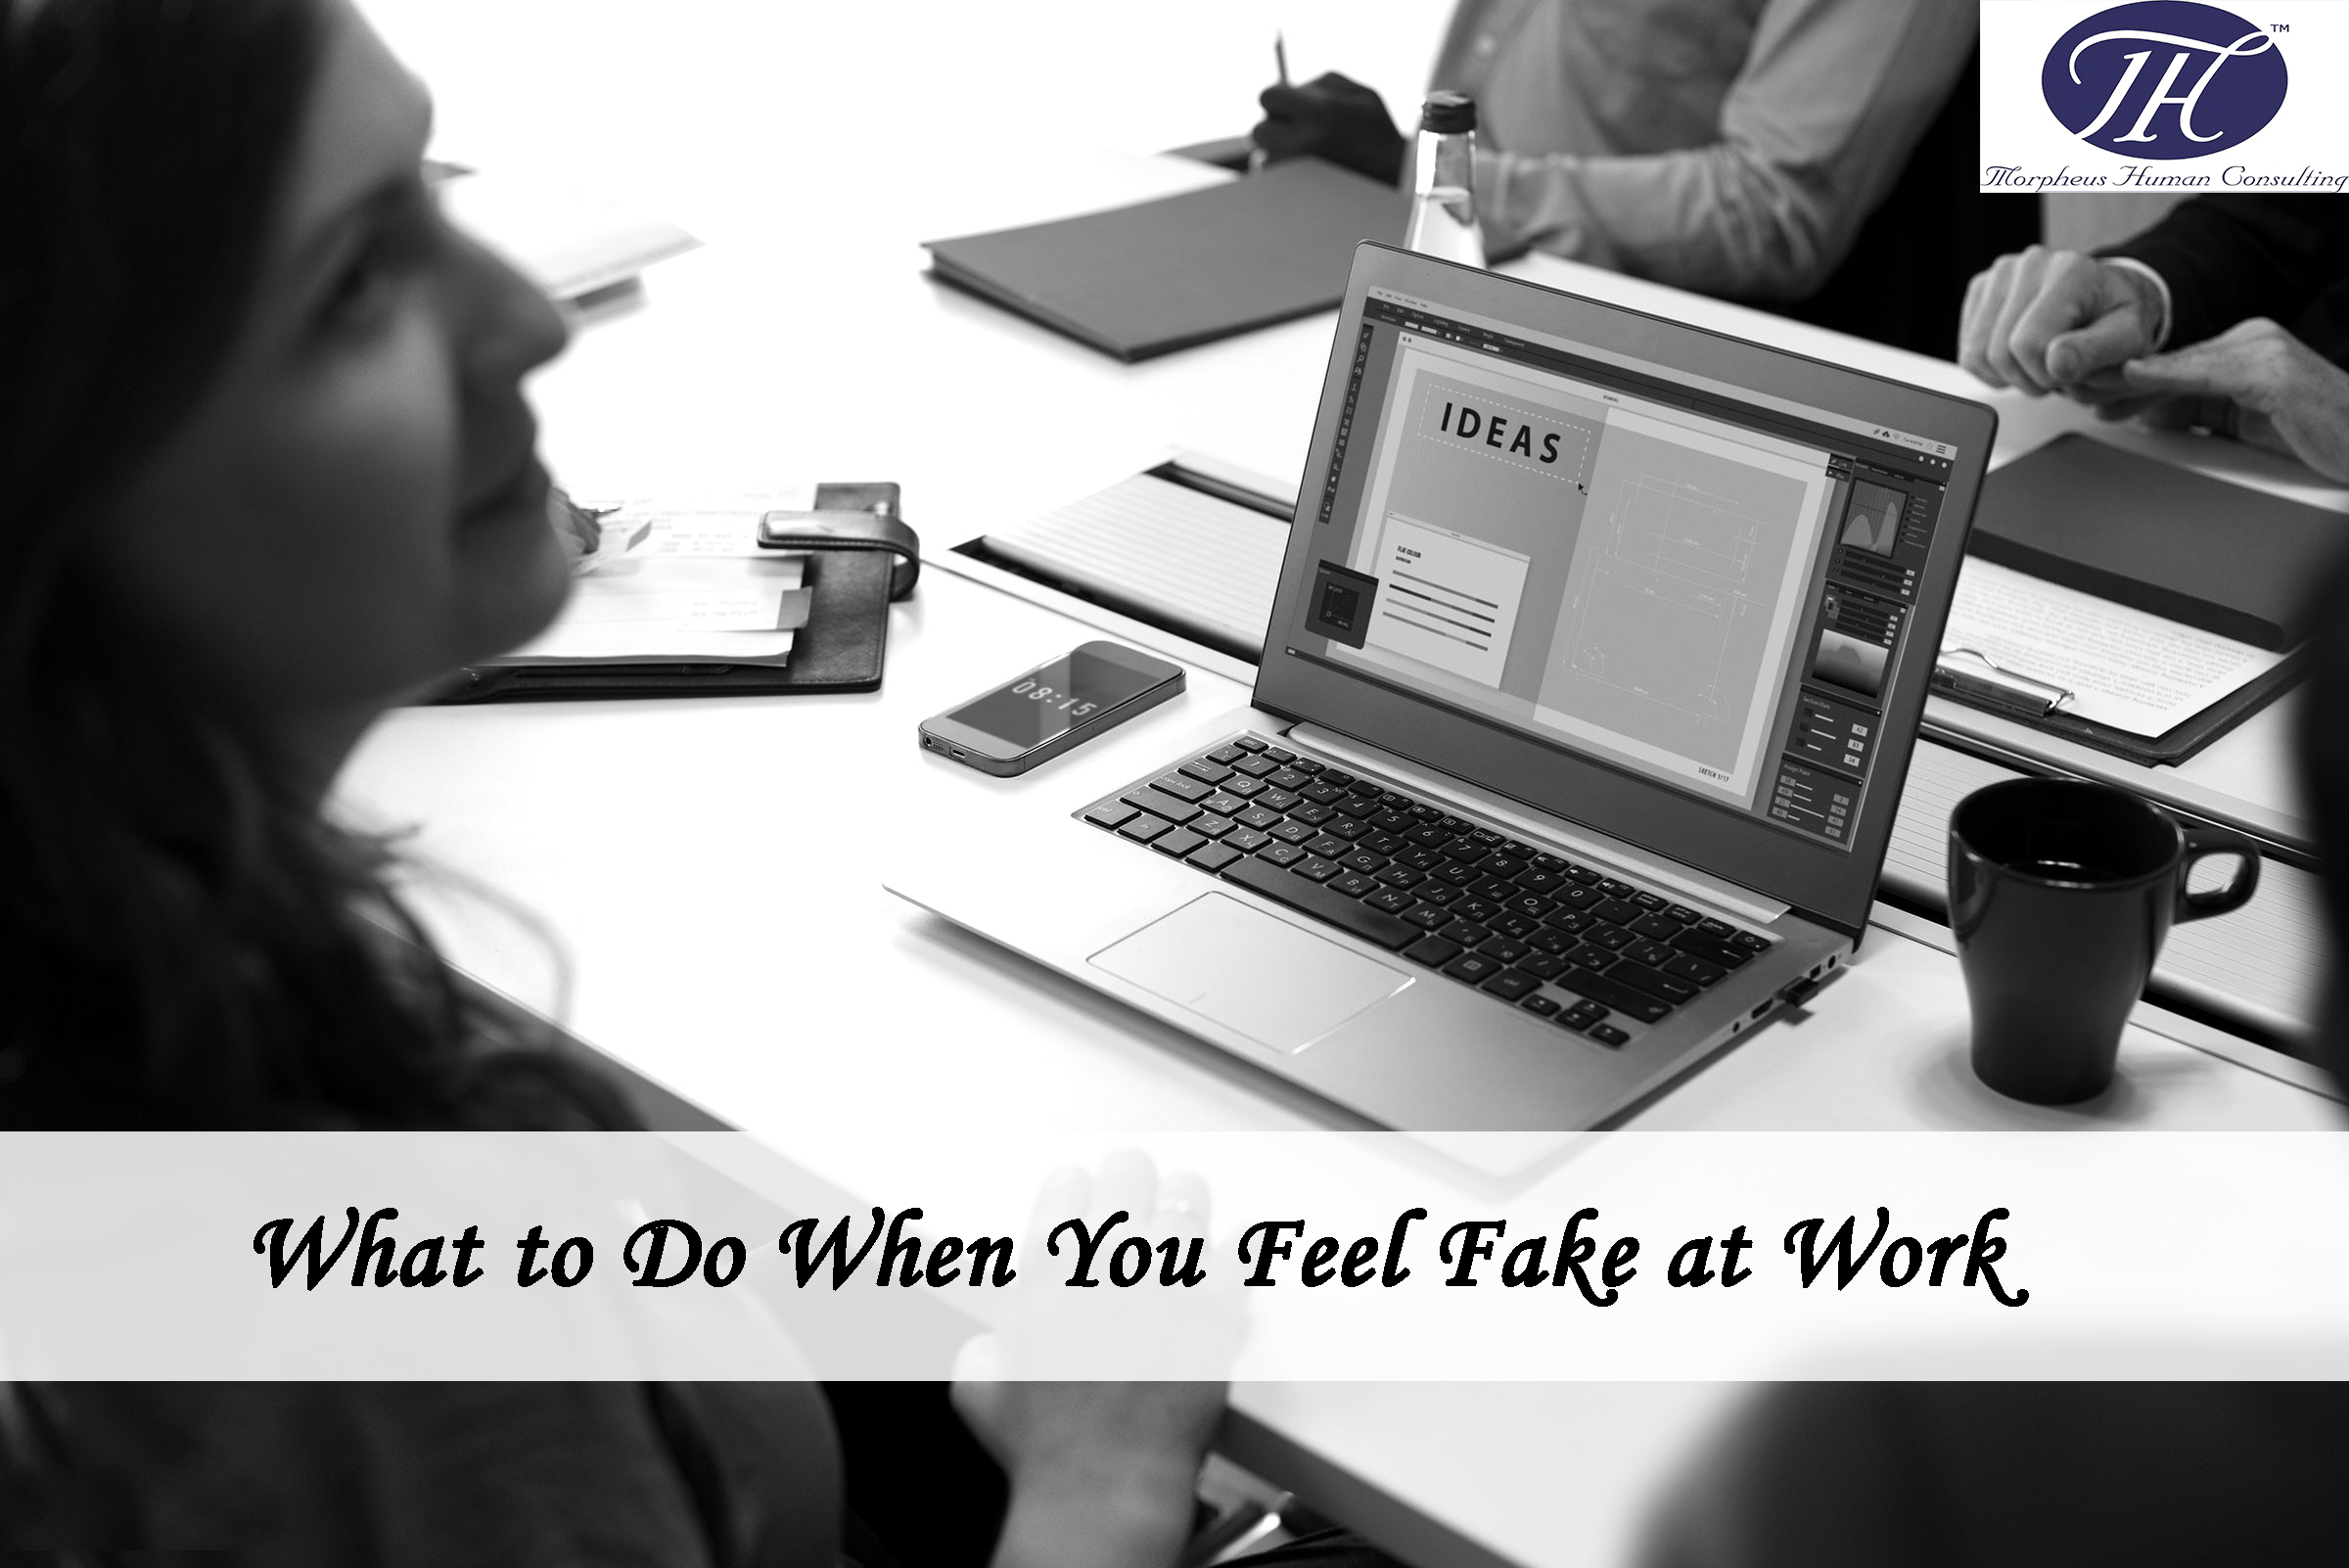 What to Do When You Feel Fake at Work (Because You're Just Not That Into it Anymore)